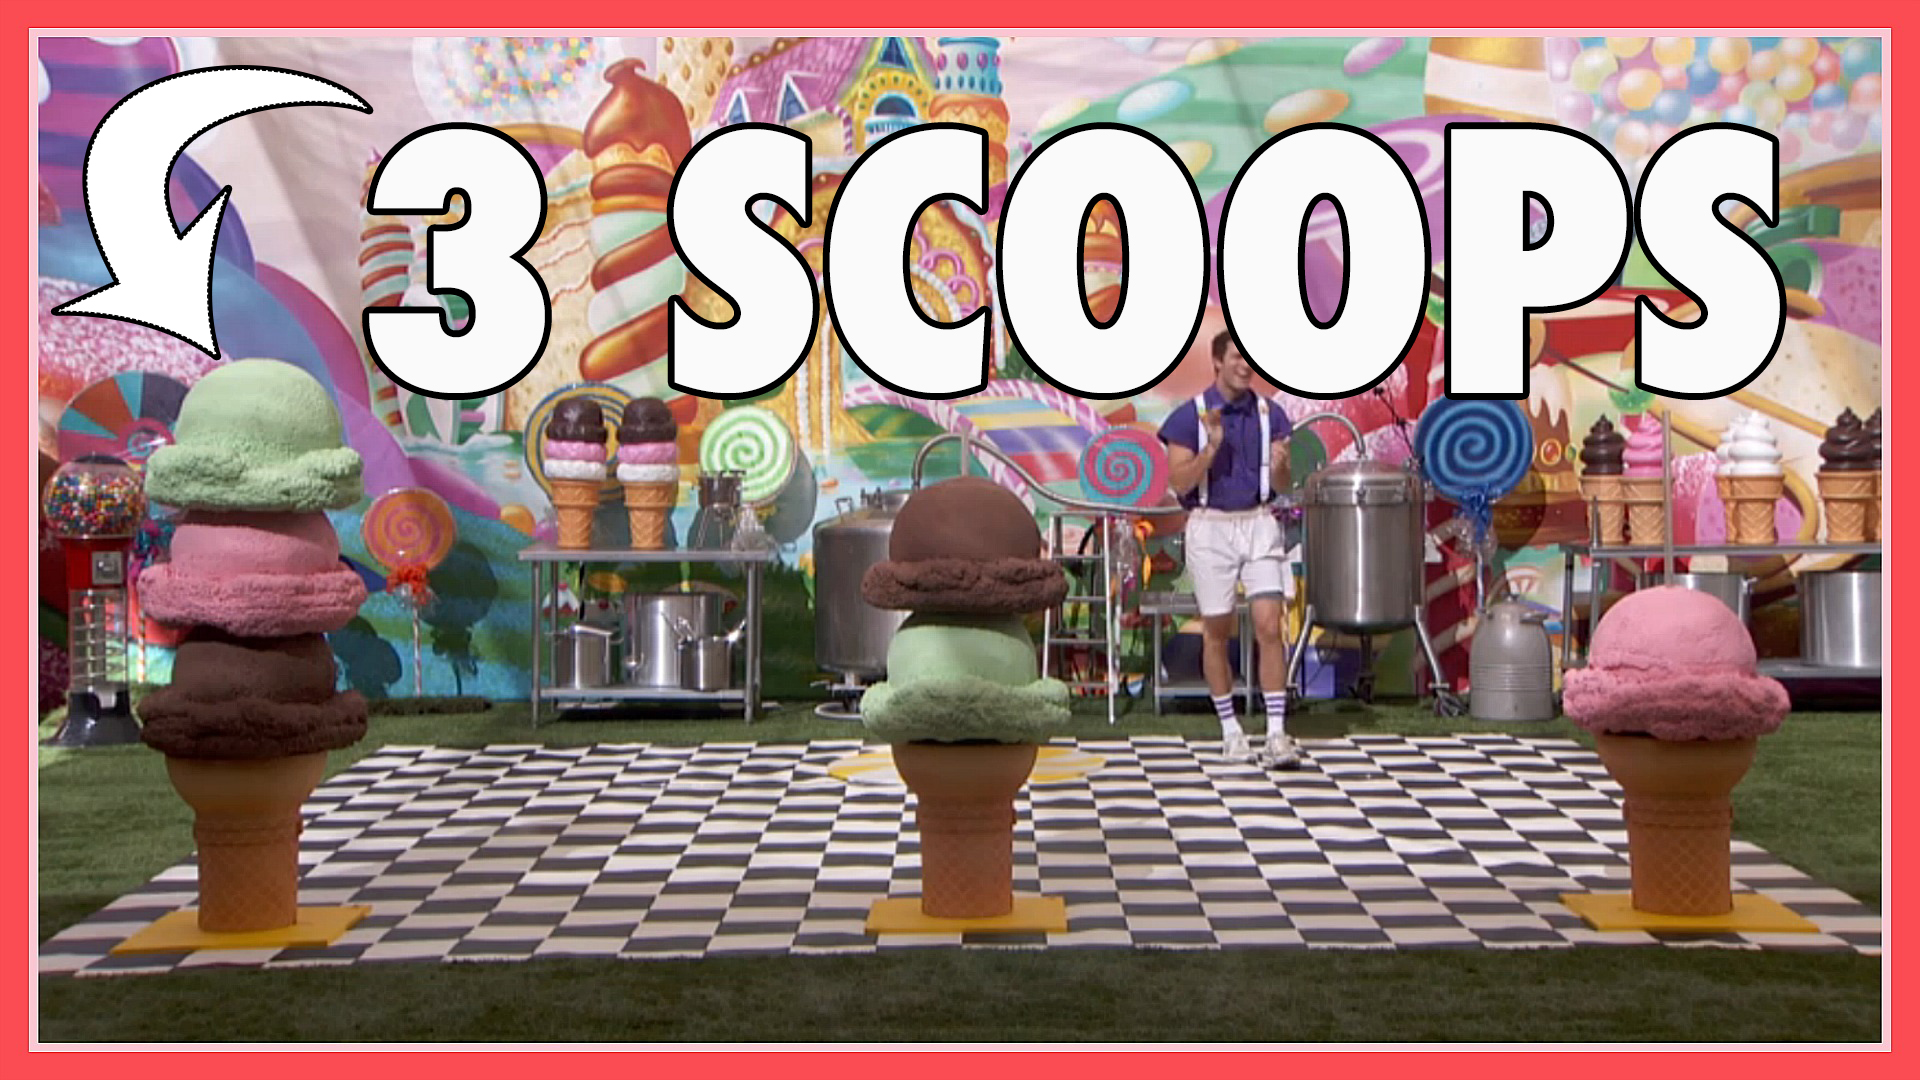 Question: How many scoops of ice cream were on the left cone in the winning round of the